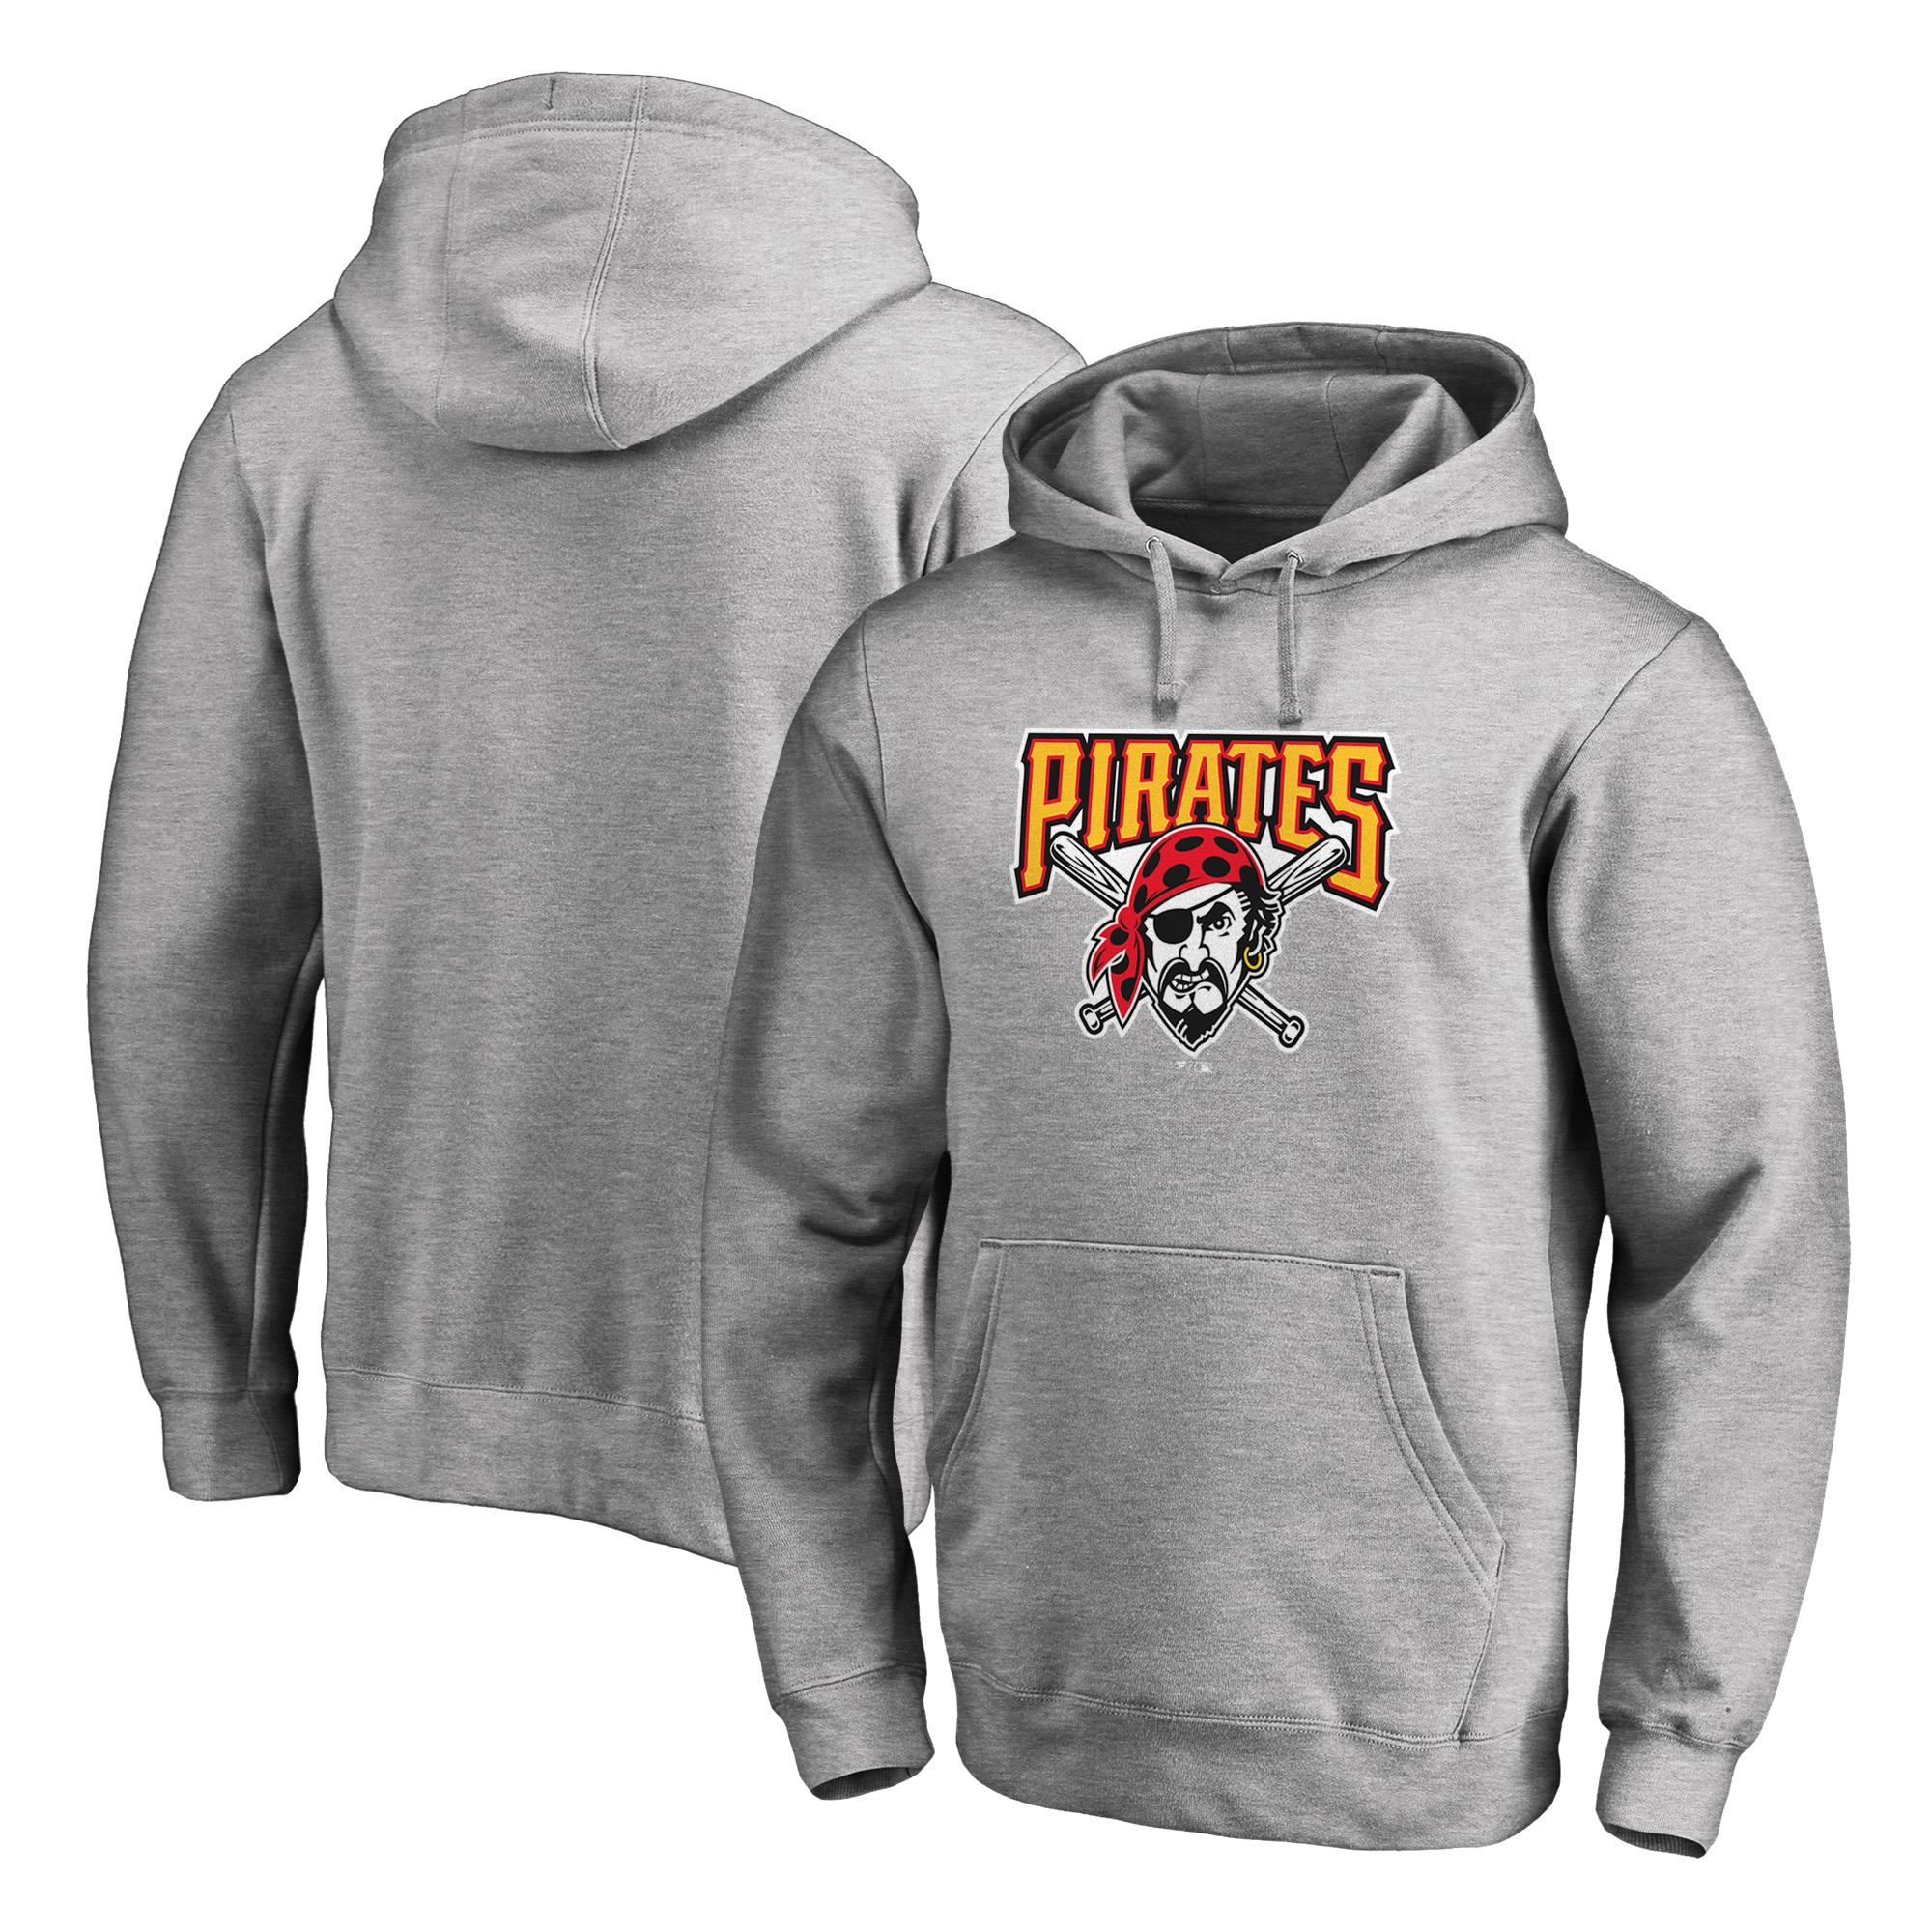 Pittsburgh Pirates Fanatics Branded Cooperstown Collection Huntington Pullover Hoodie - Heathered Gray